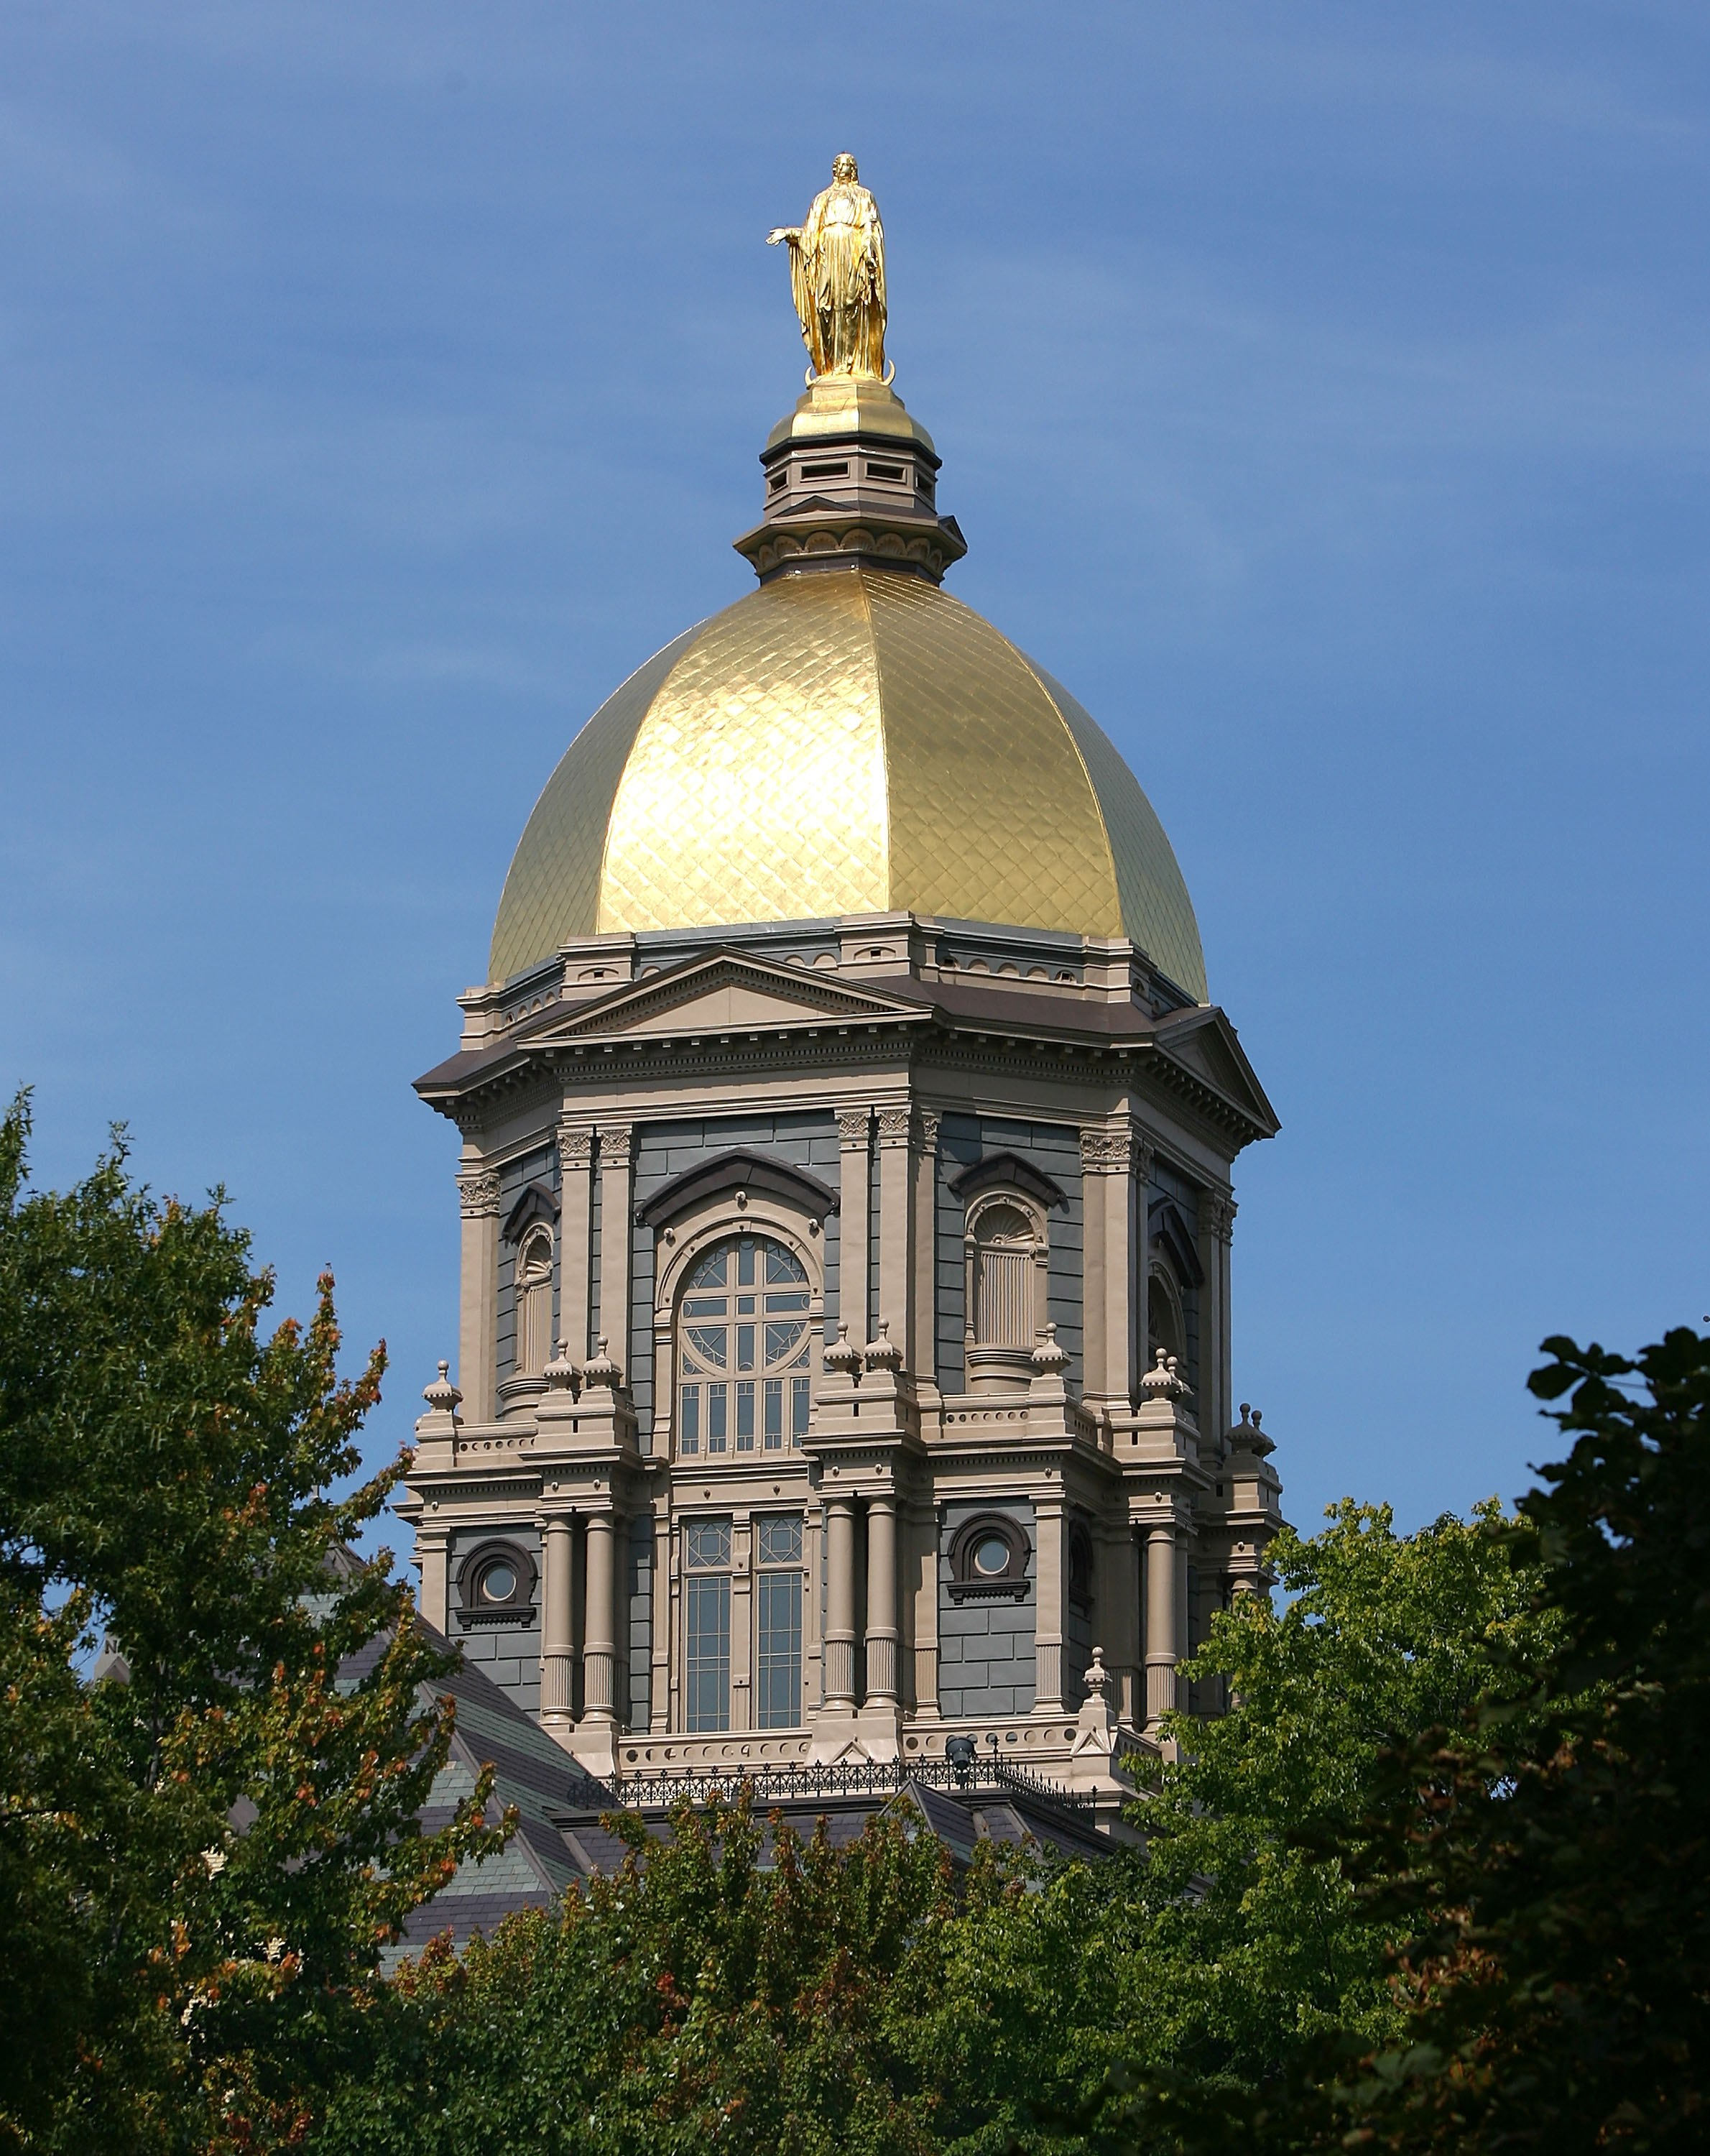 SOUTH BEND, IN - SEPTEMBER 19: A general view of the 'Golden Dome' on the campus of Notre Dame University before a game between the Notre Dame Fighting Irish and the Michigan State Spartans on September 19, 2009 at Notre Dame Stadium in South Bend, Indian